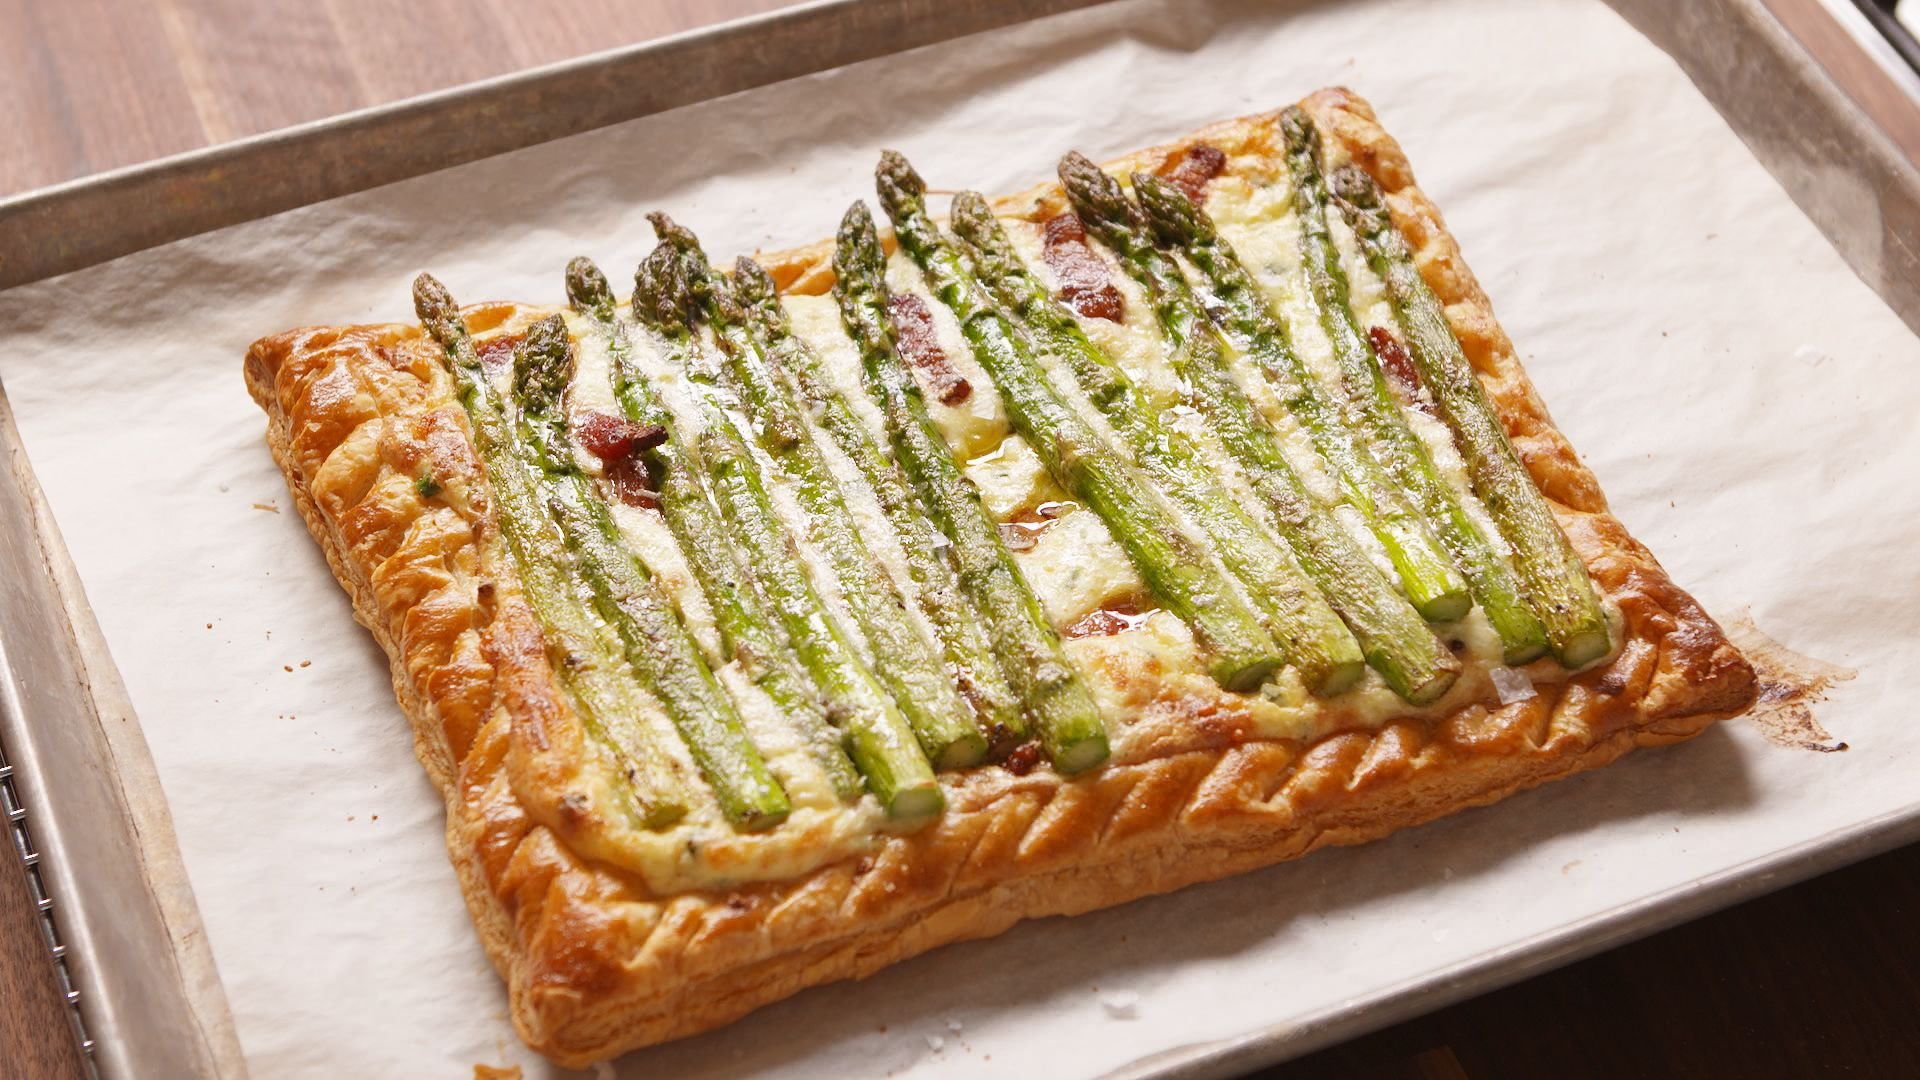 "<p>Show off your #skillz with this gorg breakfast tart.</p><p>Get the recipe from <a target=""_blank"" href=""http://www.delish.com/cooking/recipe-ideas/recipes/a47128/bacon-asparagus-tart-recipe/"">Delish</a>.</p>"